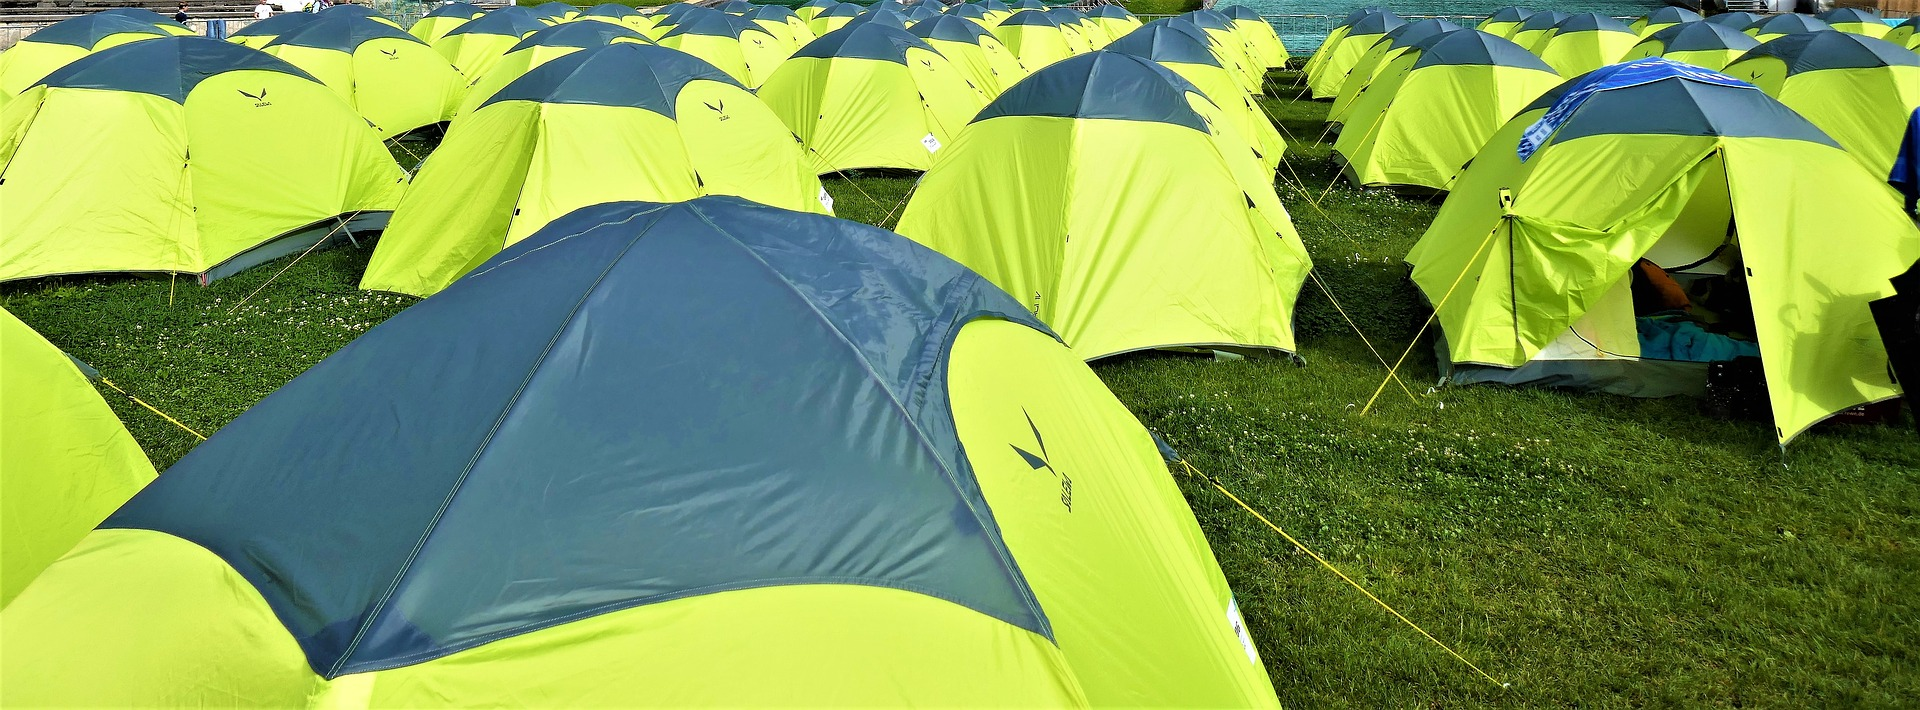 Campgrounds: How To Choose The Best One